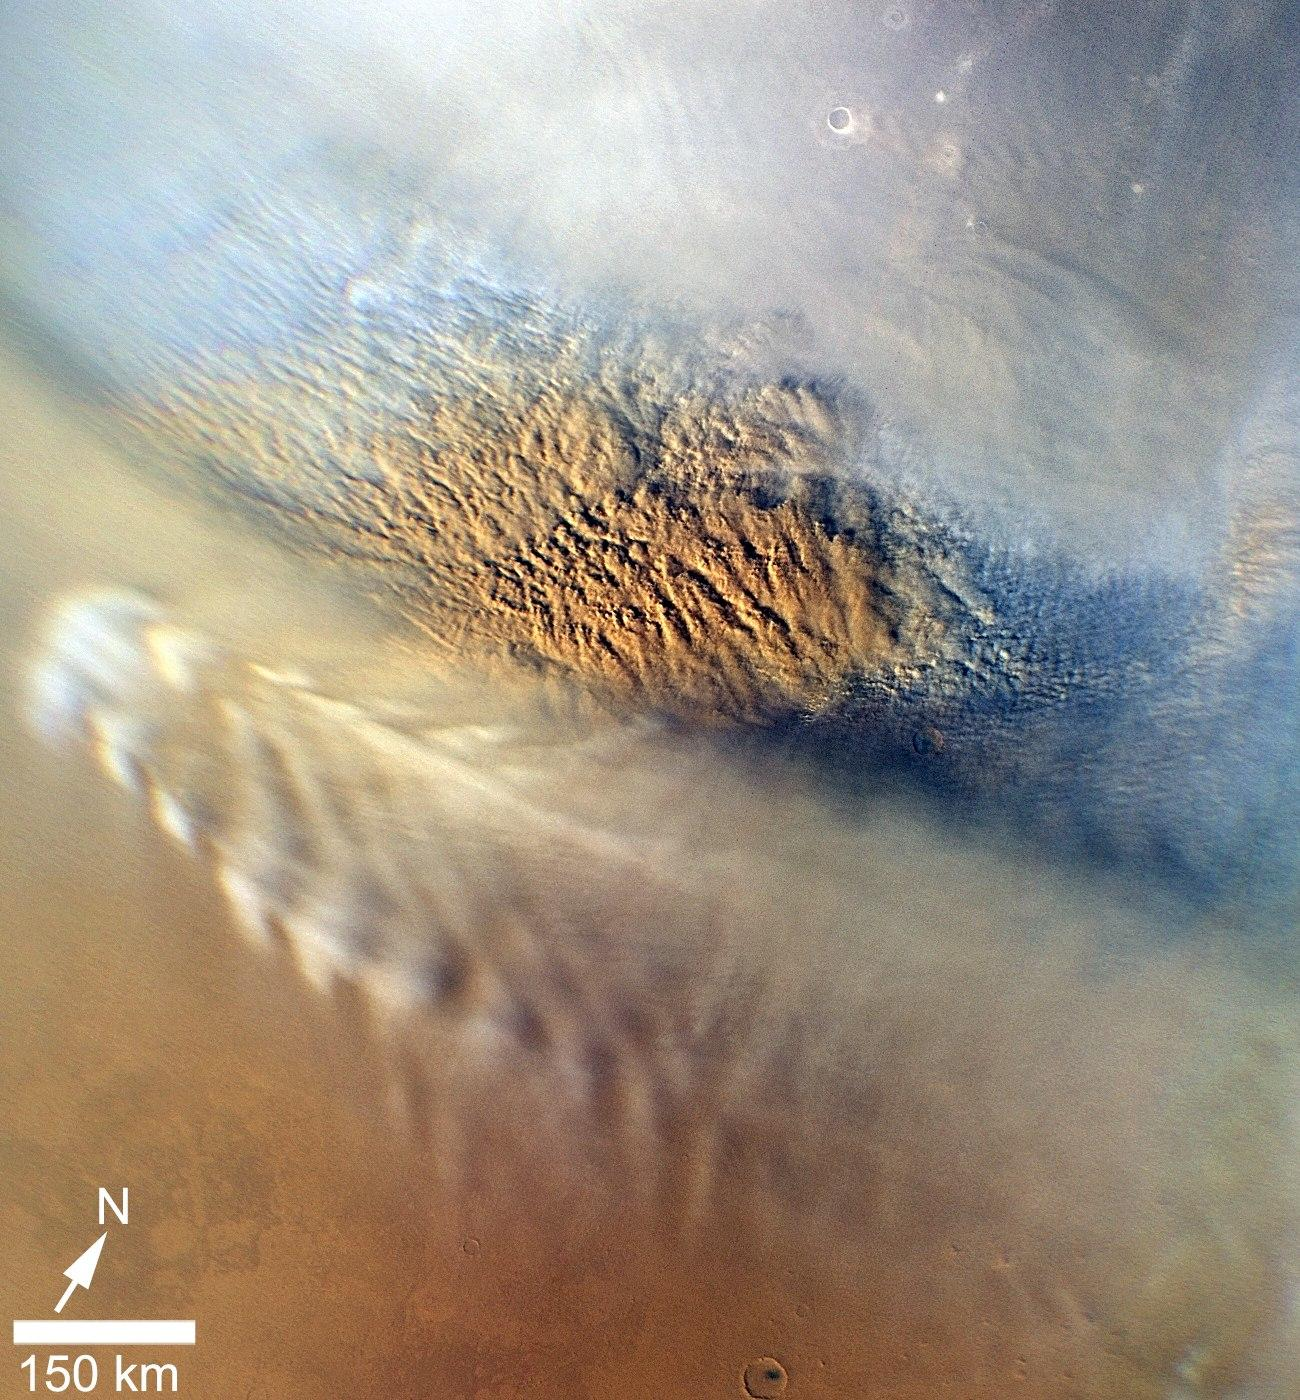 This close-up image of a dust storm on Mars was acquired by the Mars Color Imager instrument on NASA's Mars Reconnaissance Orbiter on Nov. 7, 2007